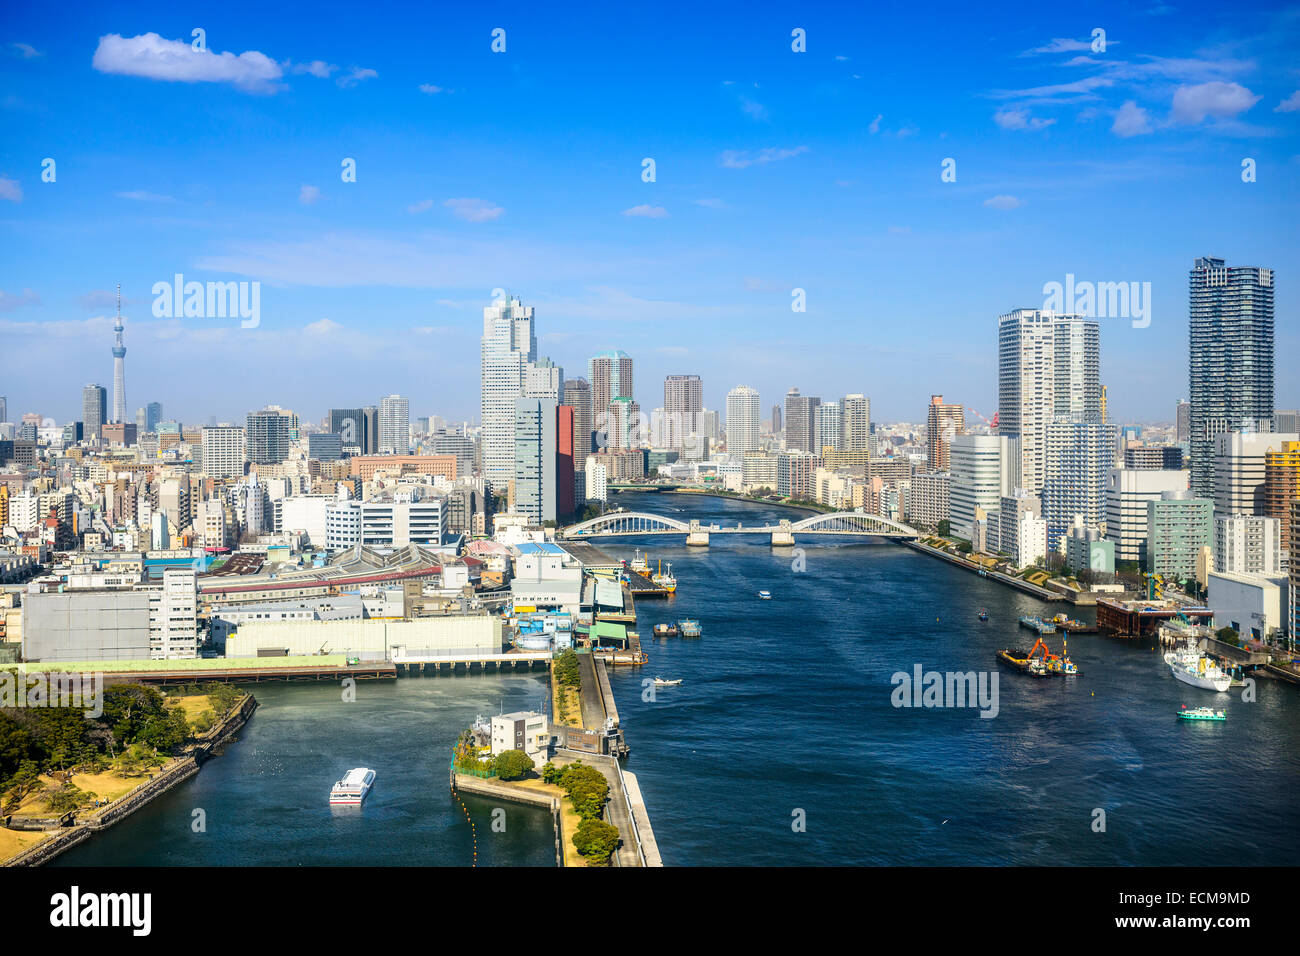 Tokyo, Japan city skyline over the Sumida River. - Stock Image